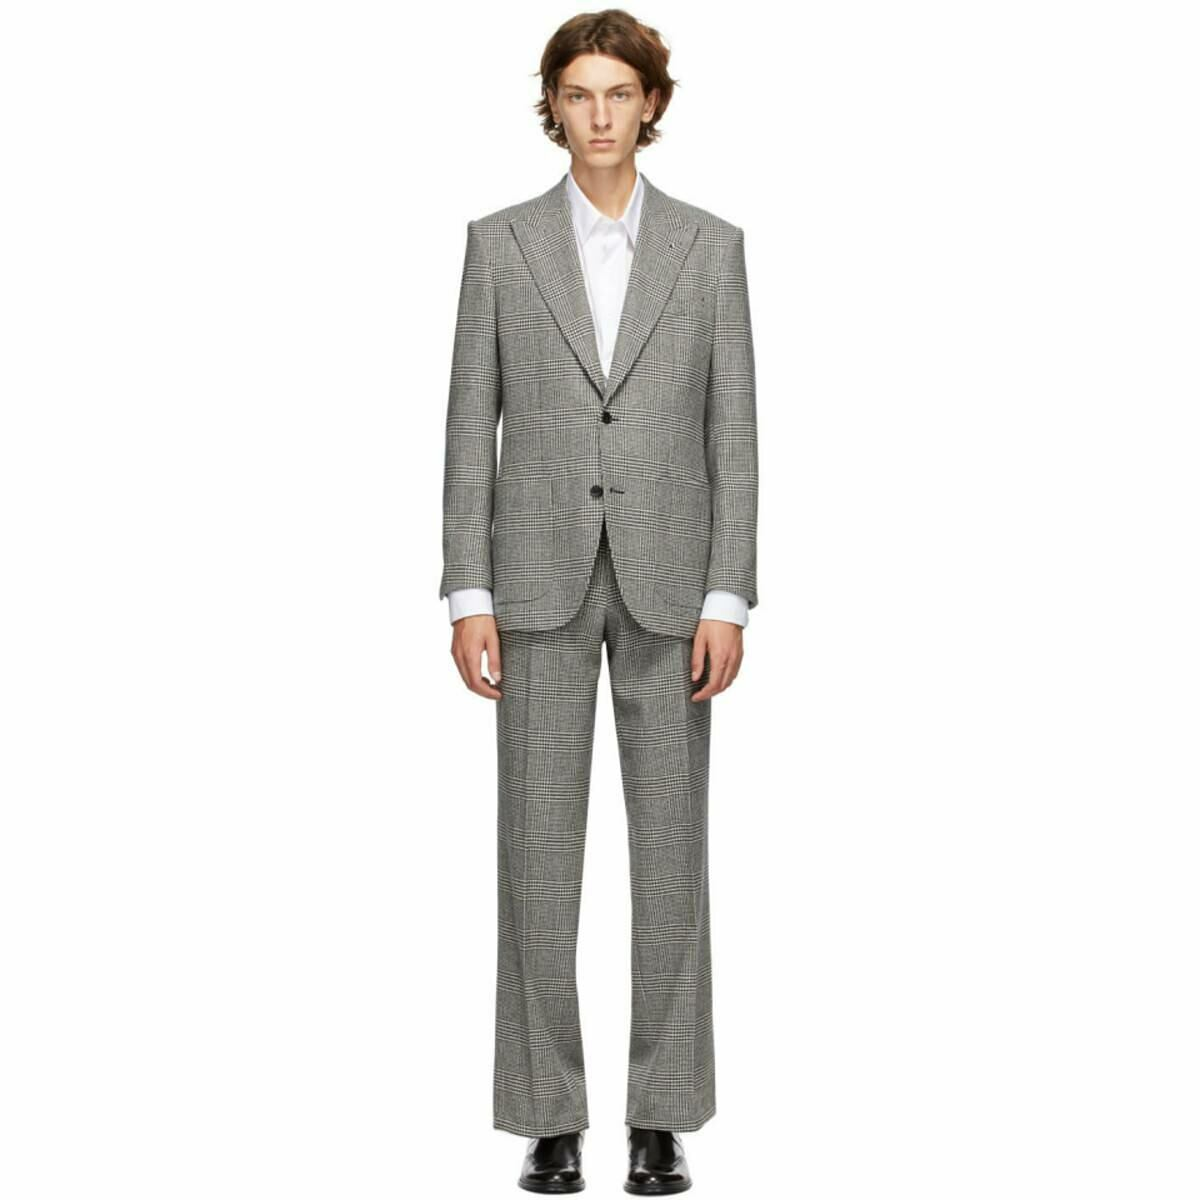 Husbands Black and White Wool Checkered Suit Ssense USA MEN Men FASHION Mens SUITS